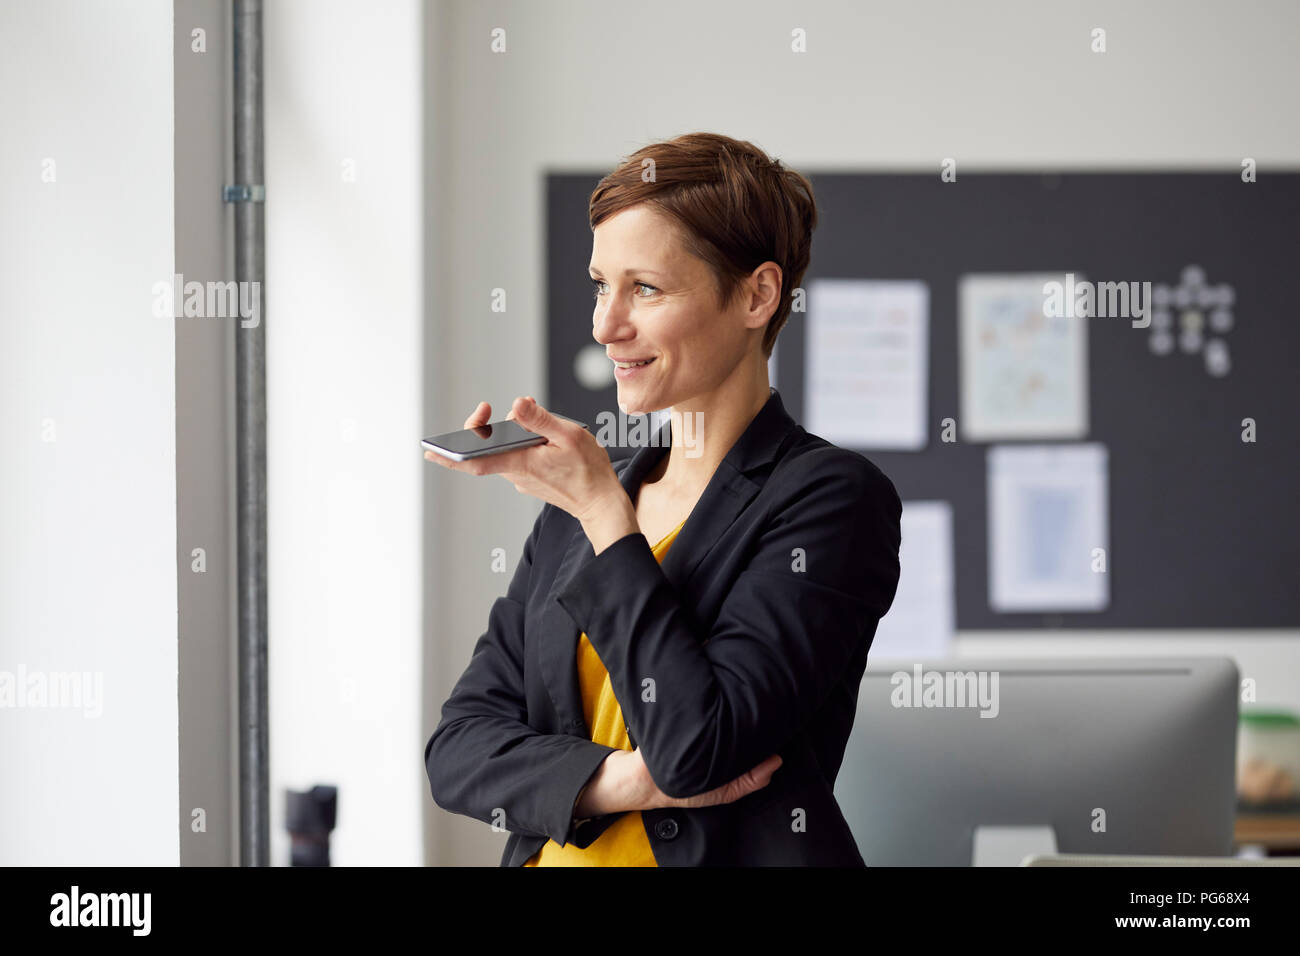 Attractive businesswoman standing in office, using smartphone - Stock Image